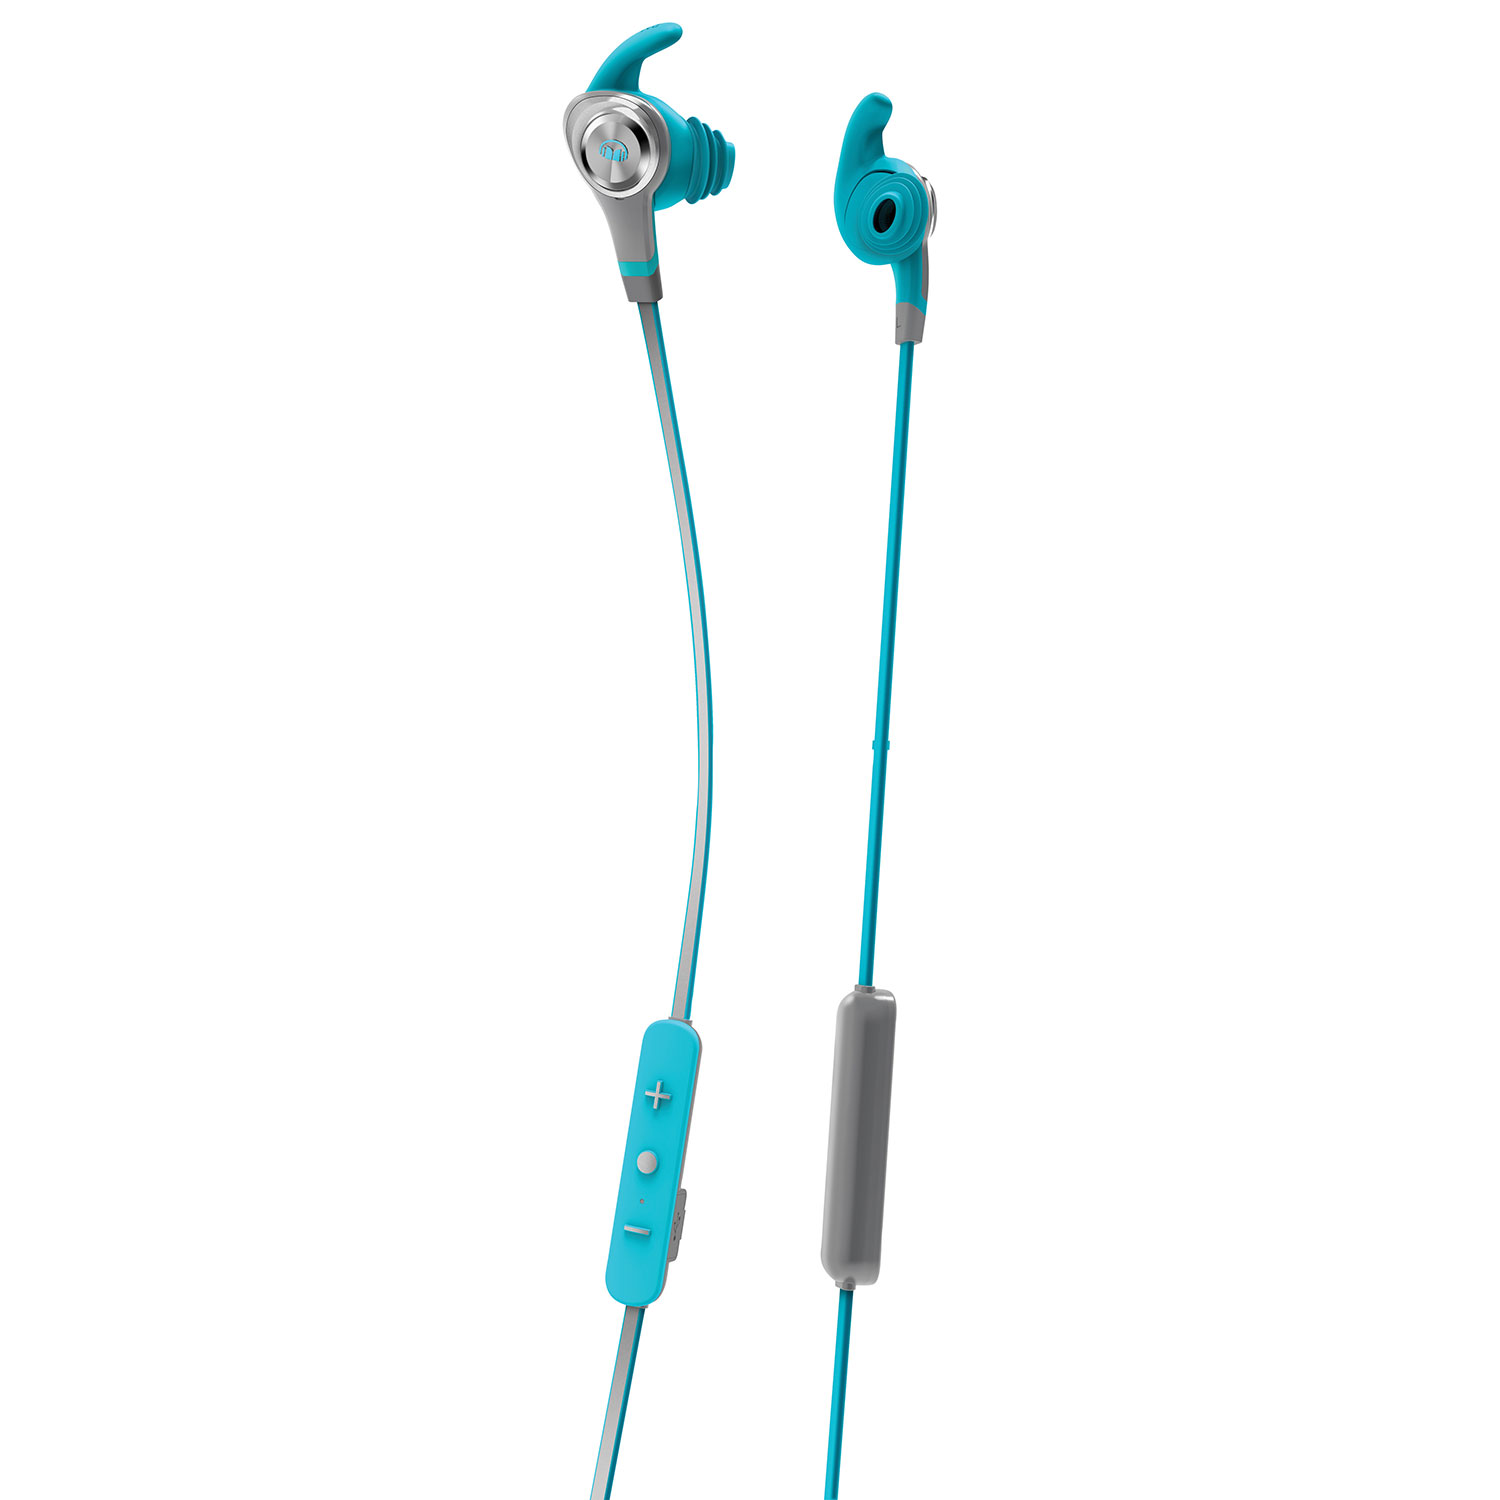 Monster Isport Intensity In Ear Sound Isolating Bluetooth Headphones Isolation Audio Having On Volume Control Wiring With Mic Blue Earbuds Best Buy Canada